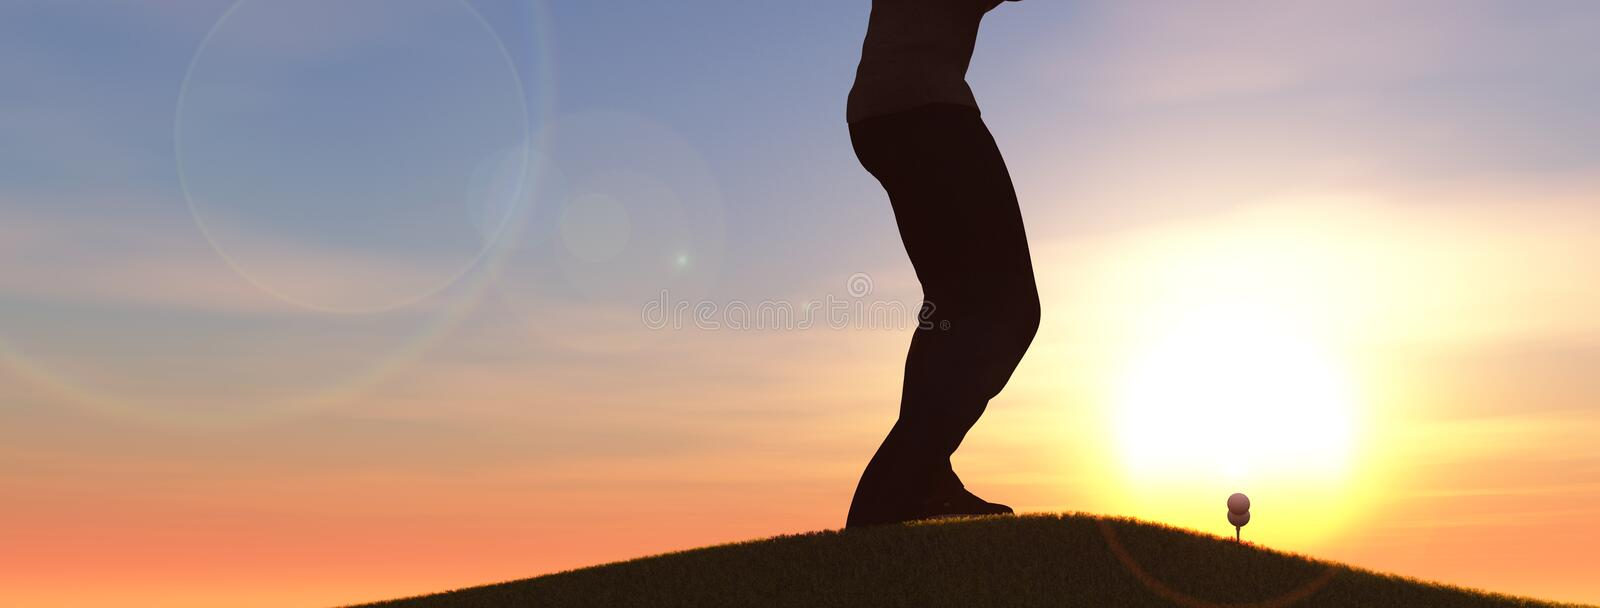 Golf. Player about to hit the ball 3d illustration stock illustration